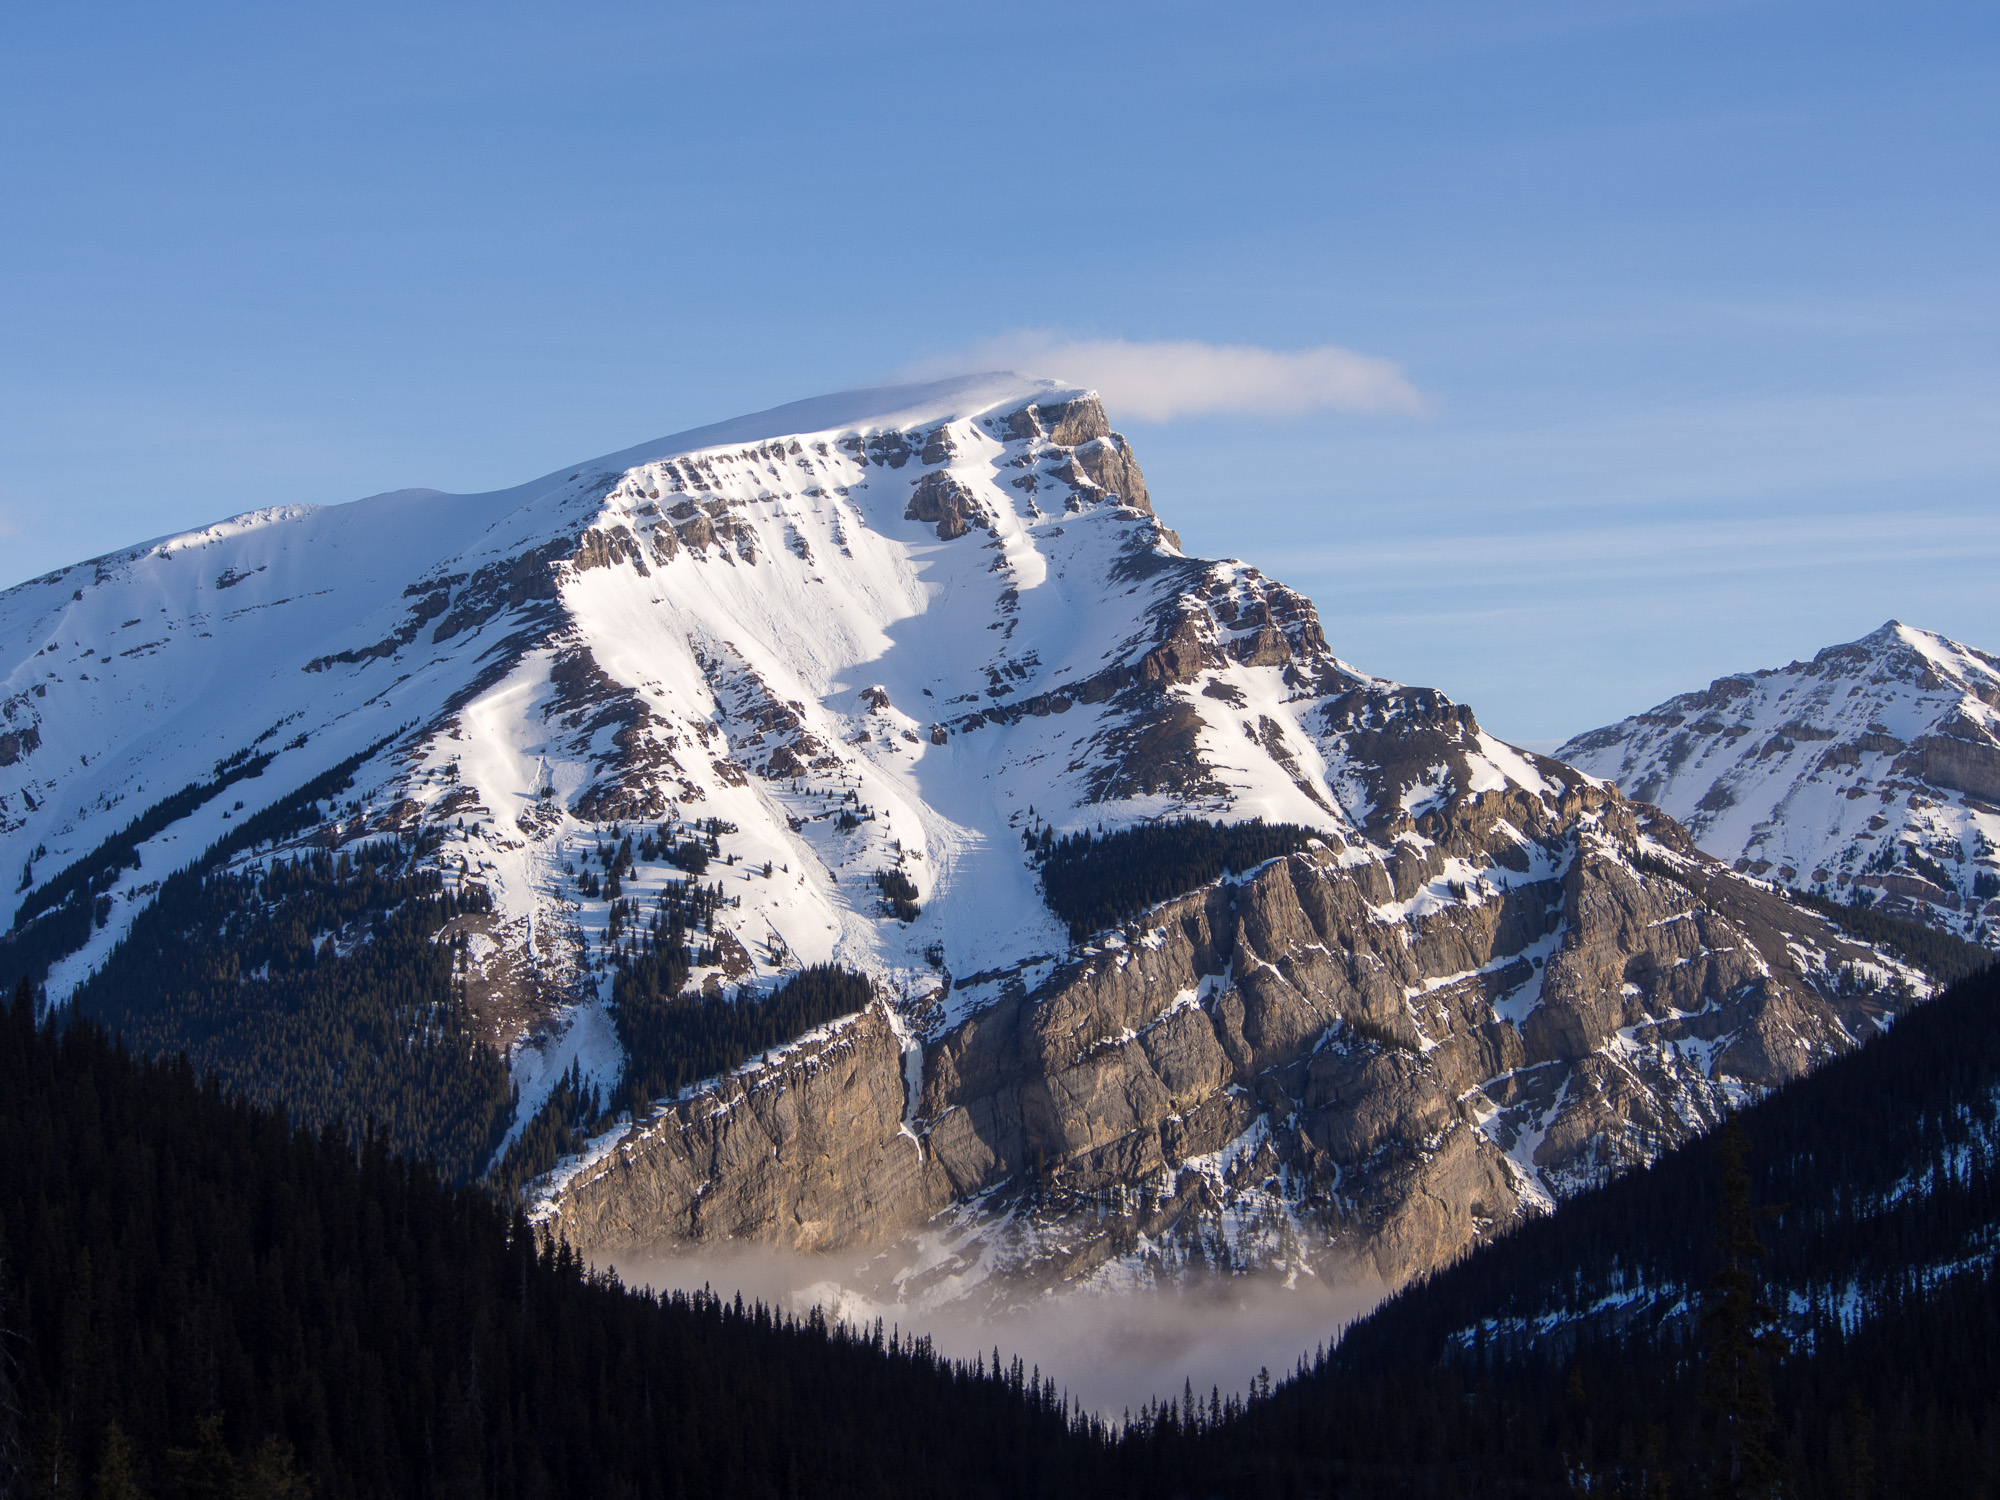 south face of Mount Bourgeau in the Canadian Rocky Mountains